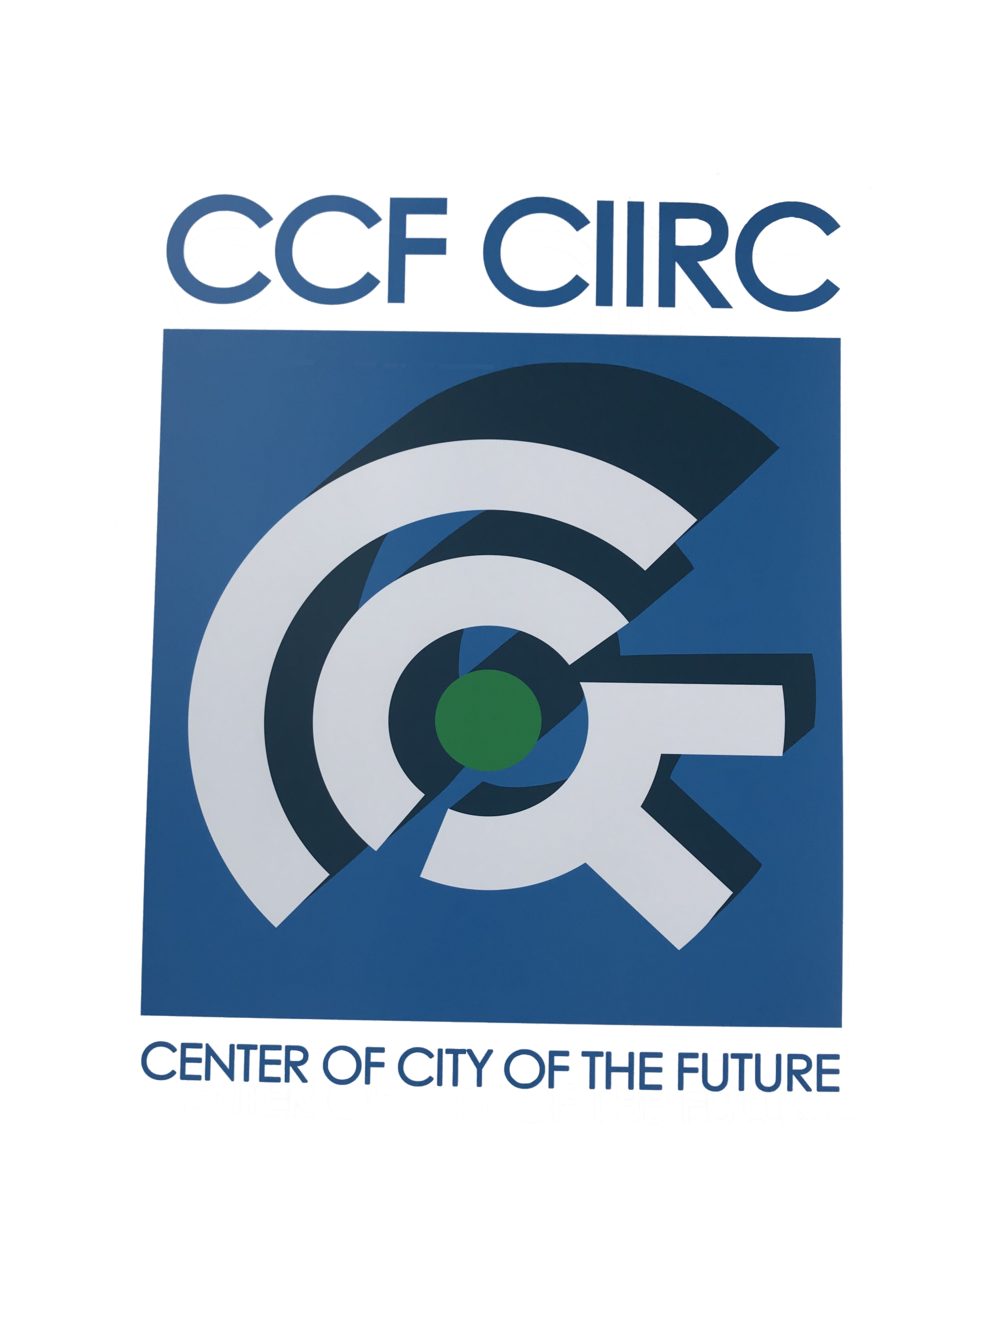 CCF CIIRC .png